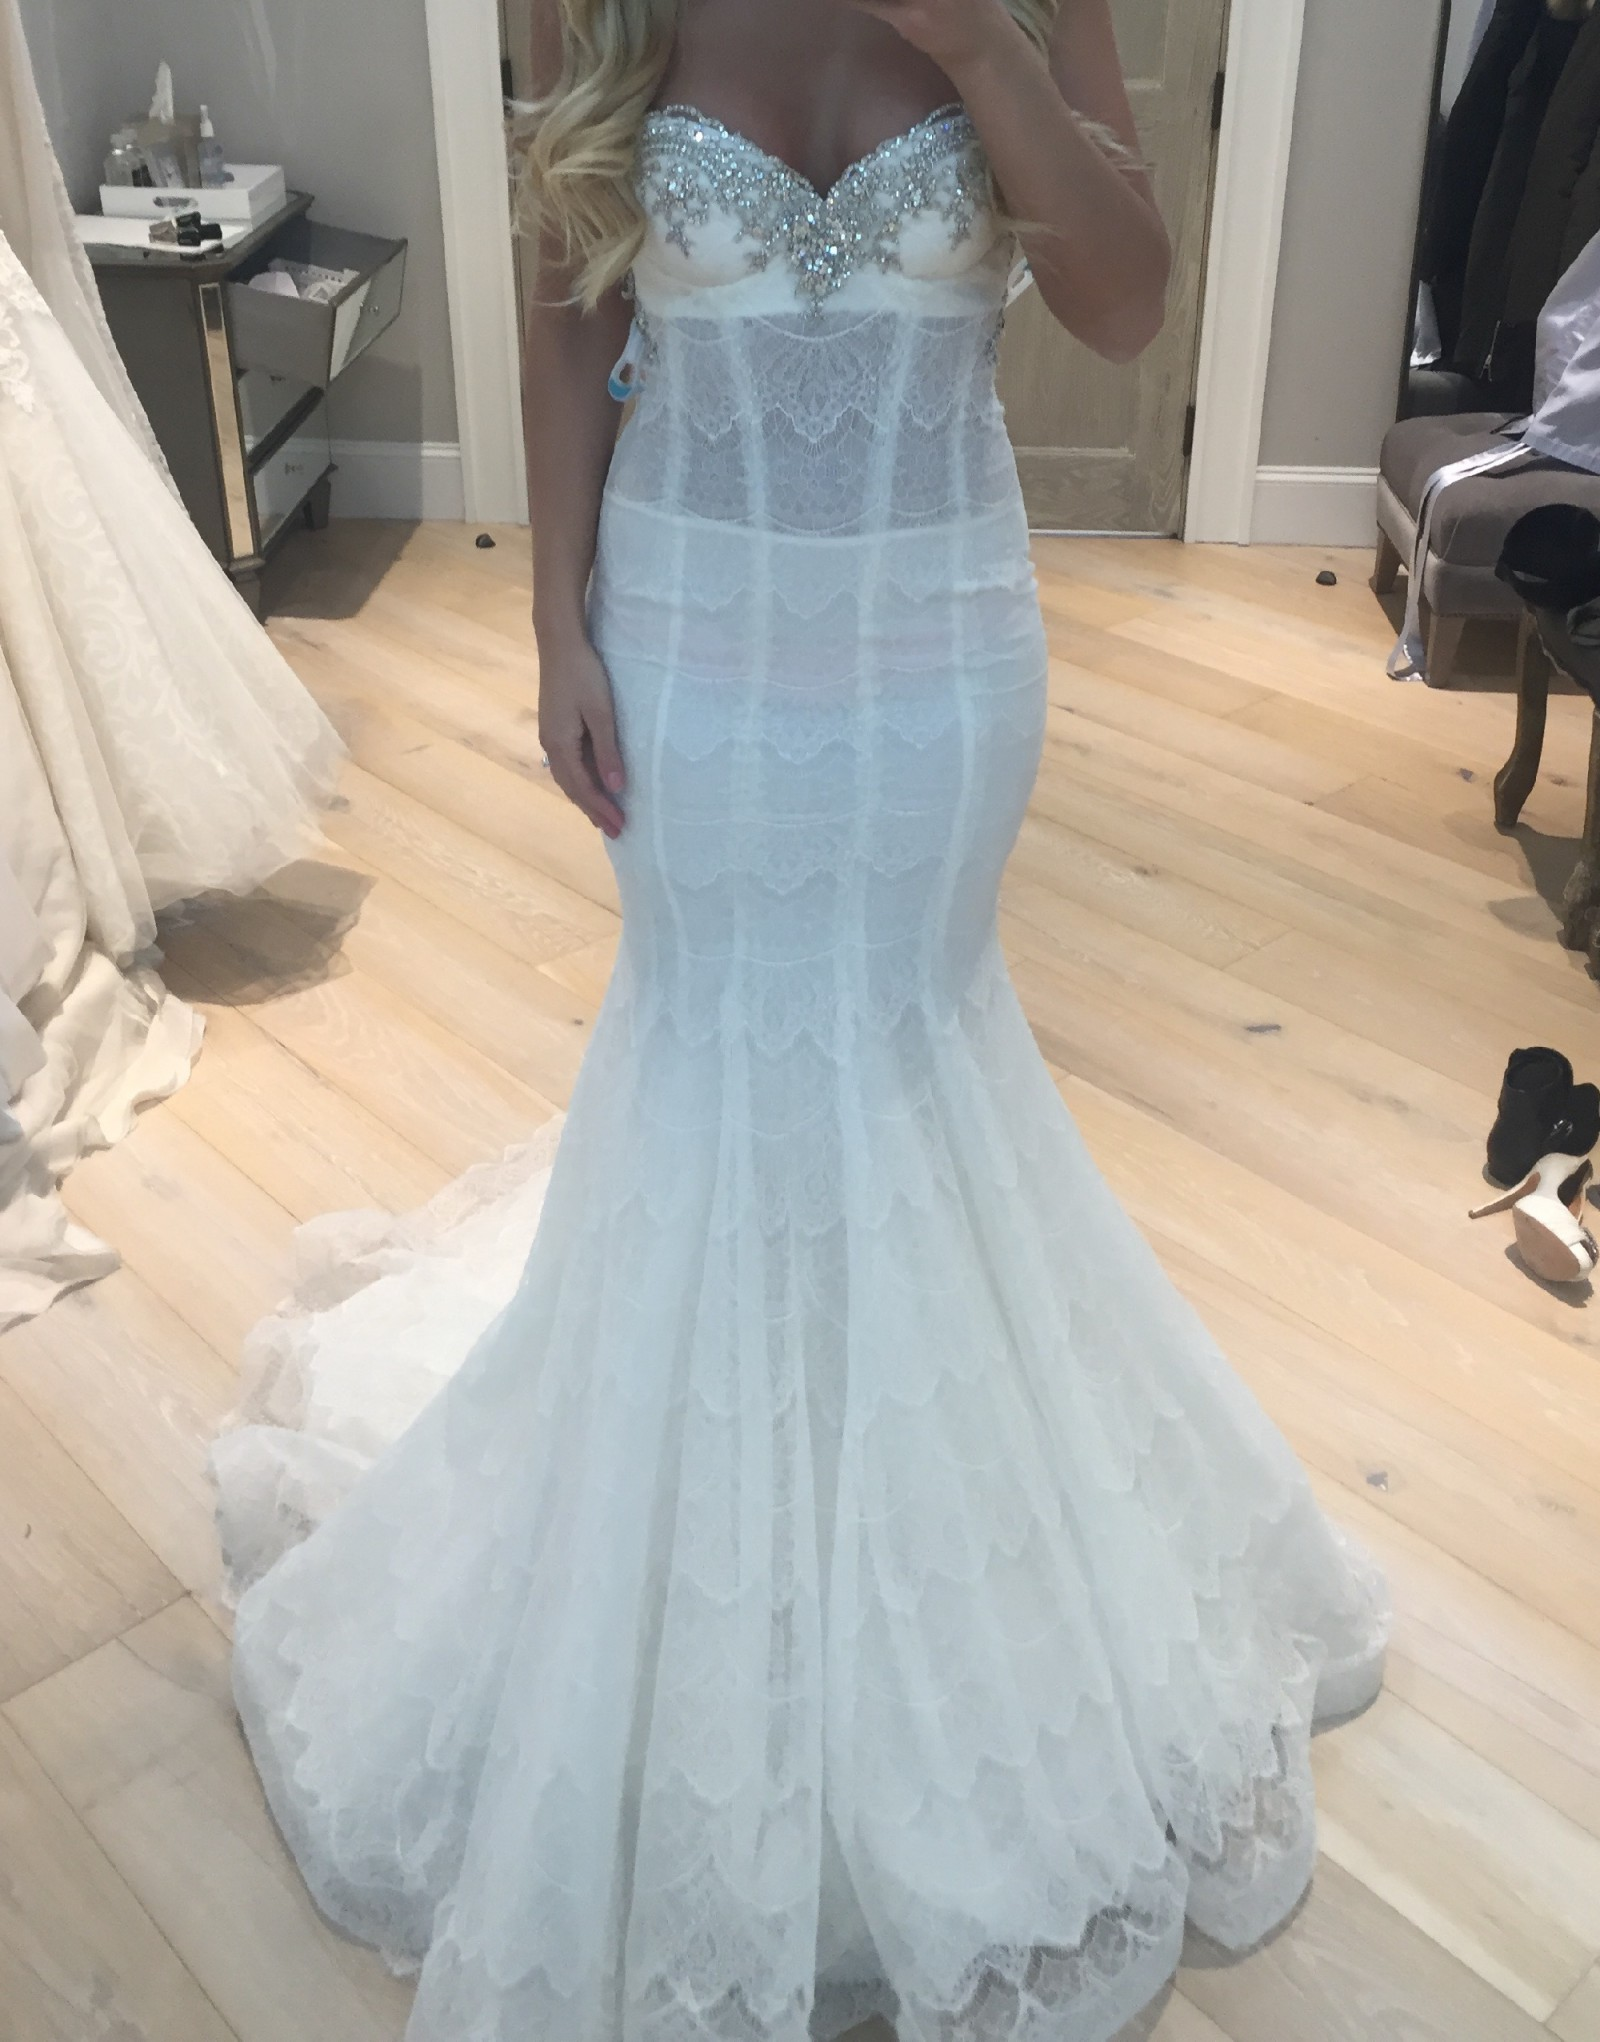 7708198c4d52 Pnina Tornai style #4291 Preowned Wedding Dress on Sale 69% Off ...